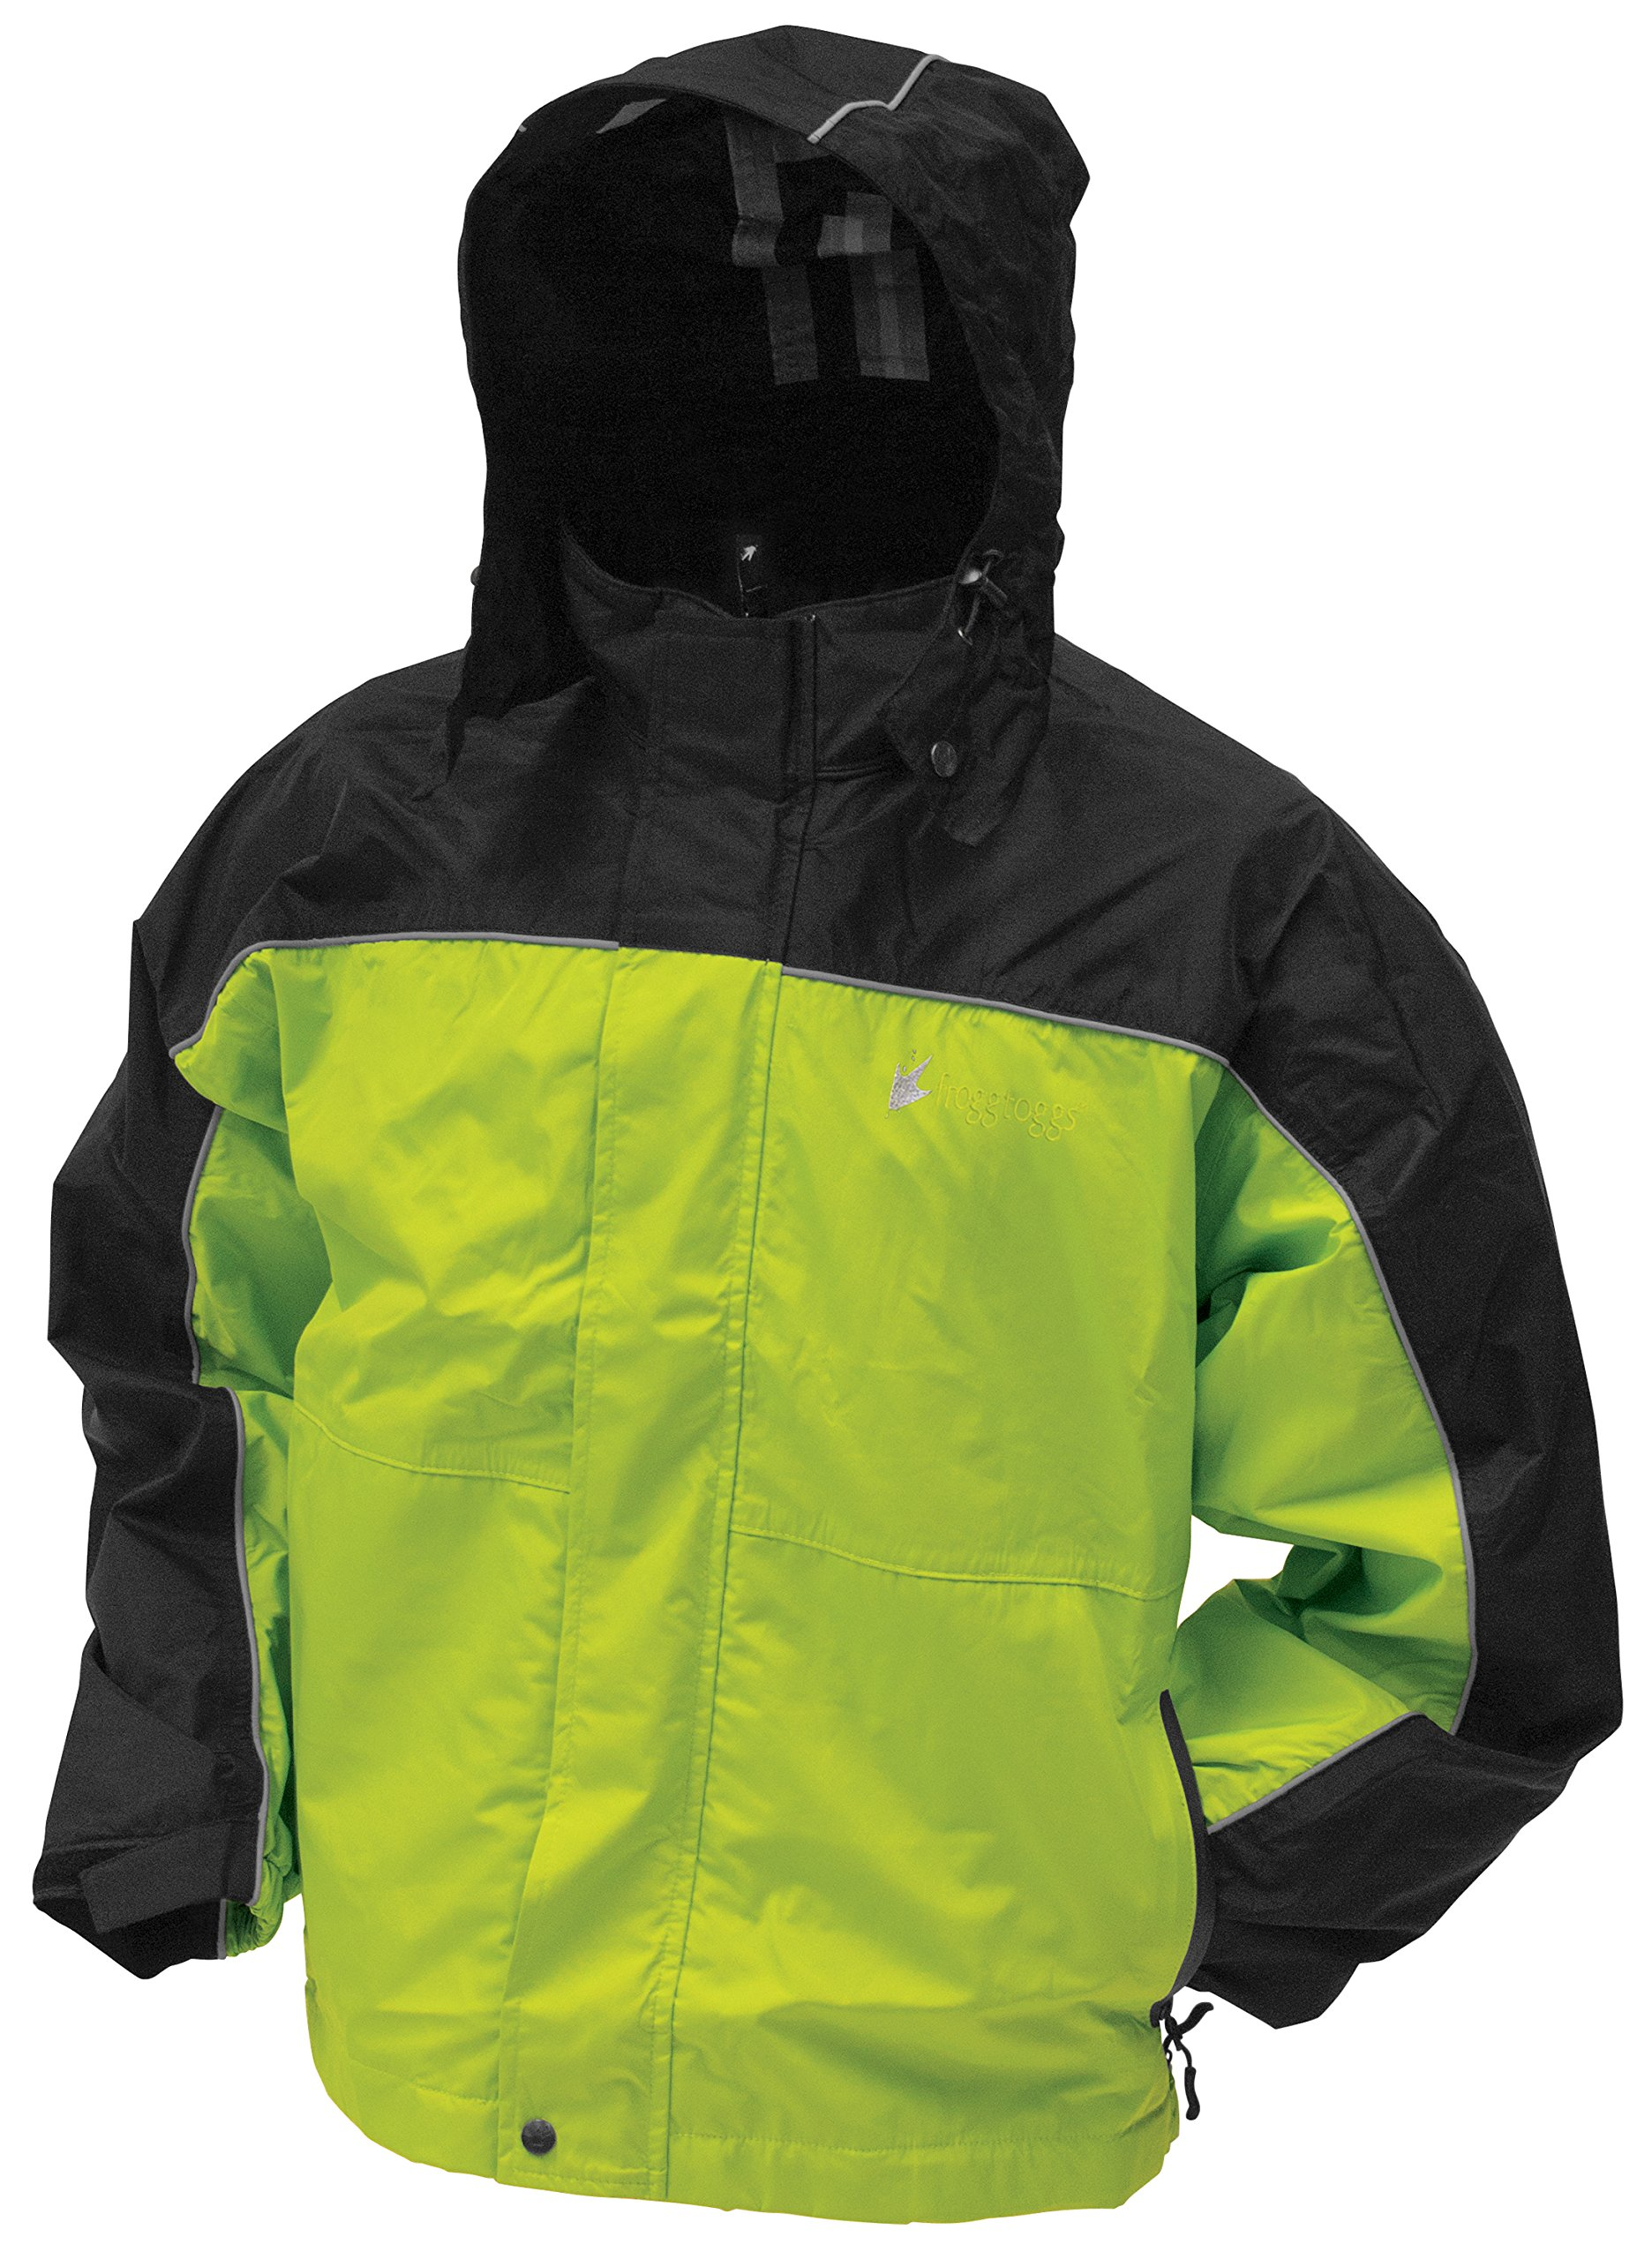 Frogg Toggs Highway Jacket Safety Green/Black Large